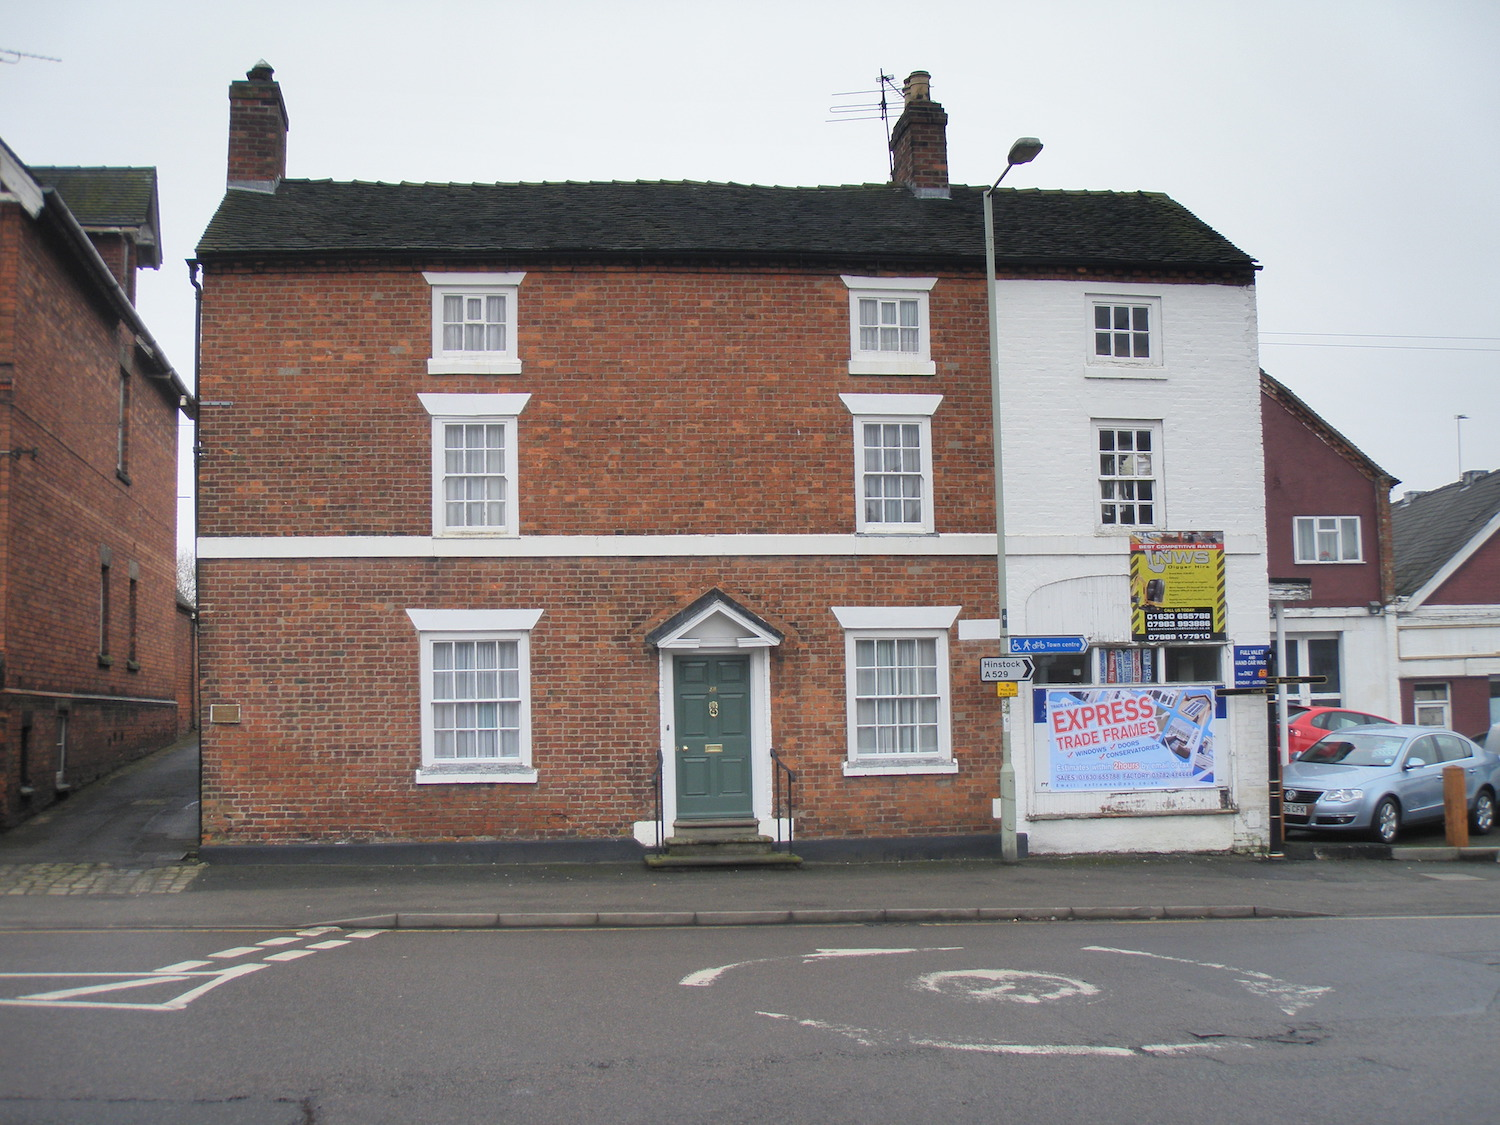 Georgian Grade II listed town house in Market Drayton